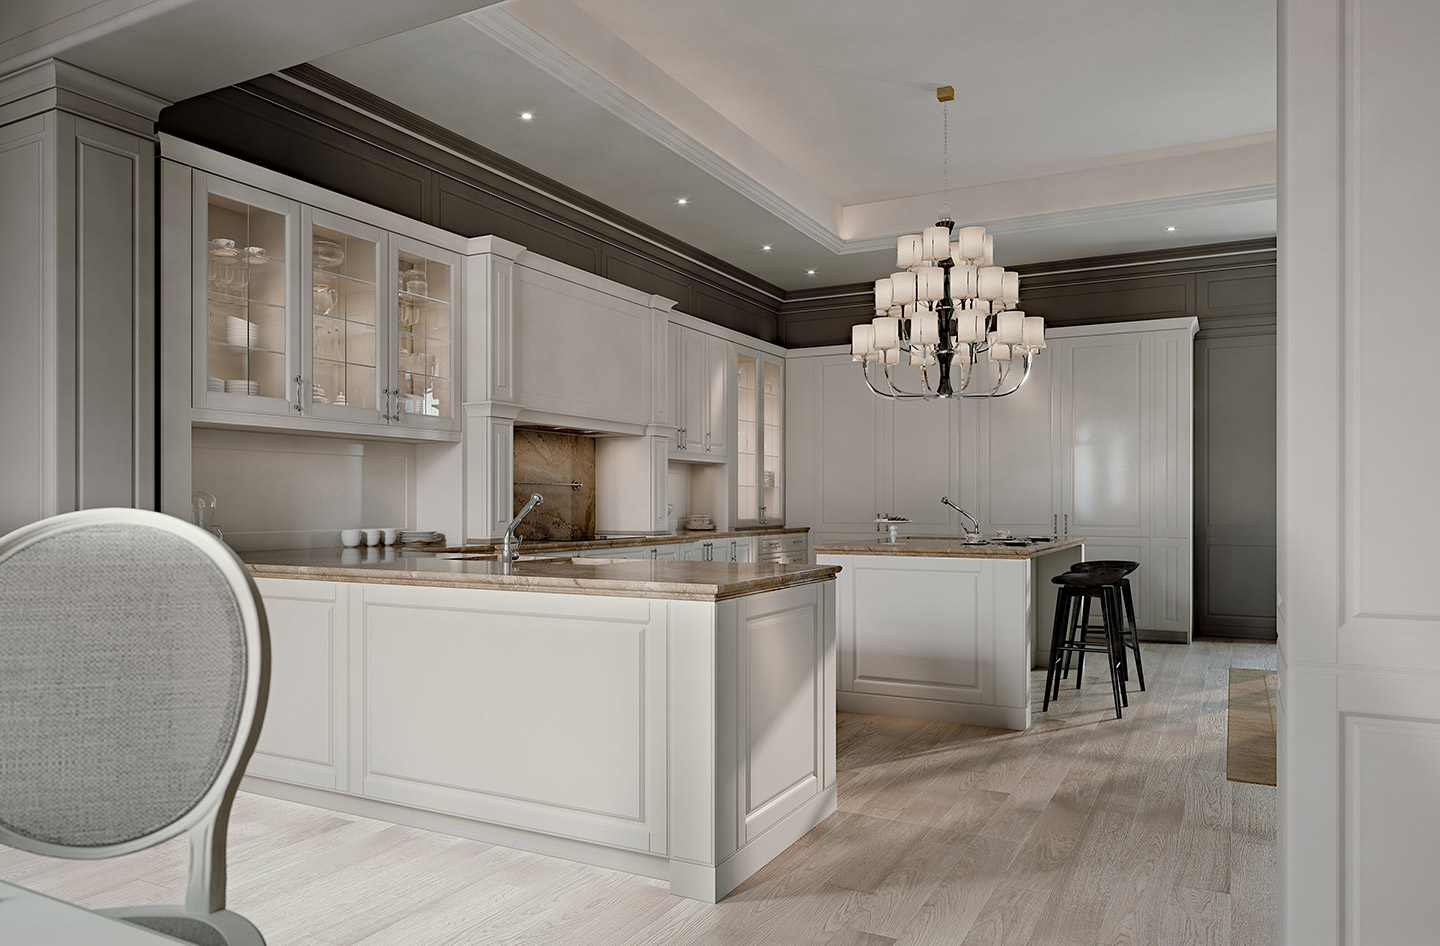 Cucina Cottage Inglese Cucine Stile Inglese Cucina With Cucine Stile Inglese Amazing